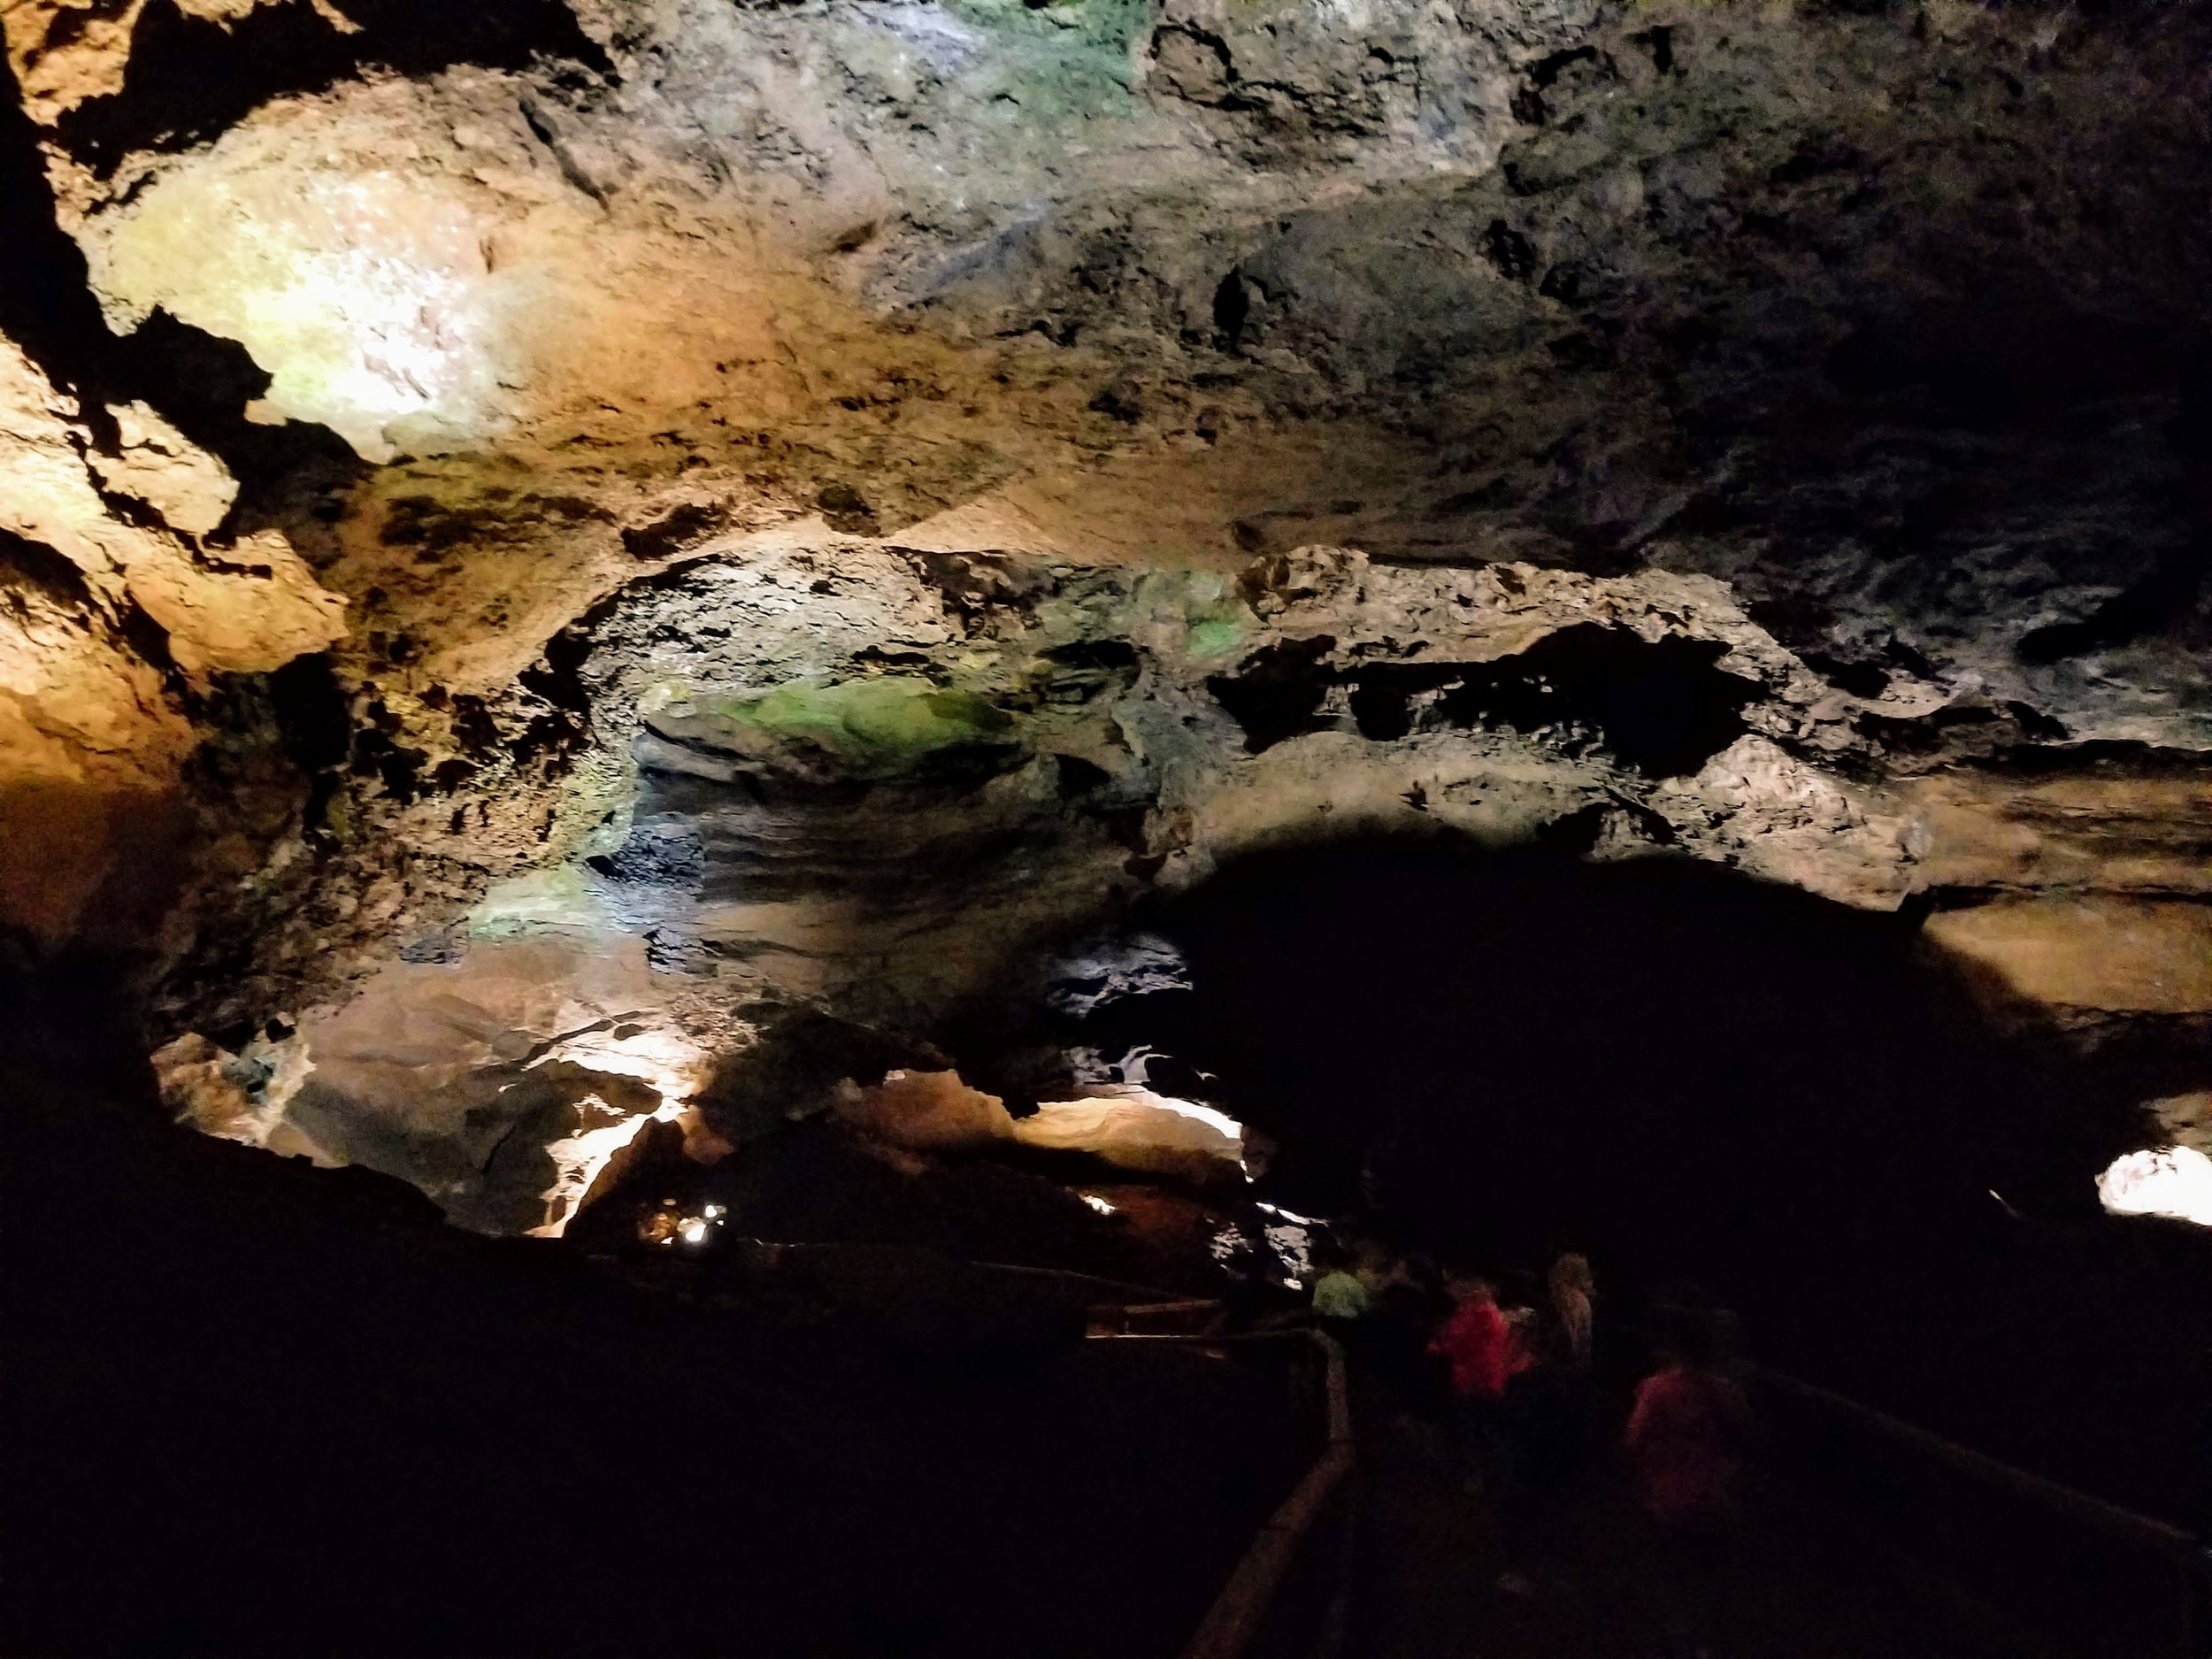 Descending down to the lake. As you can see, the cave rooms are quite roomy. (Ha!)